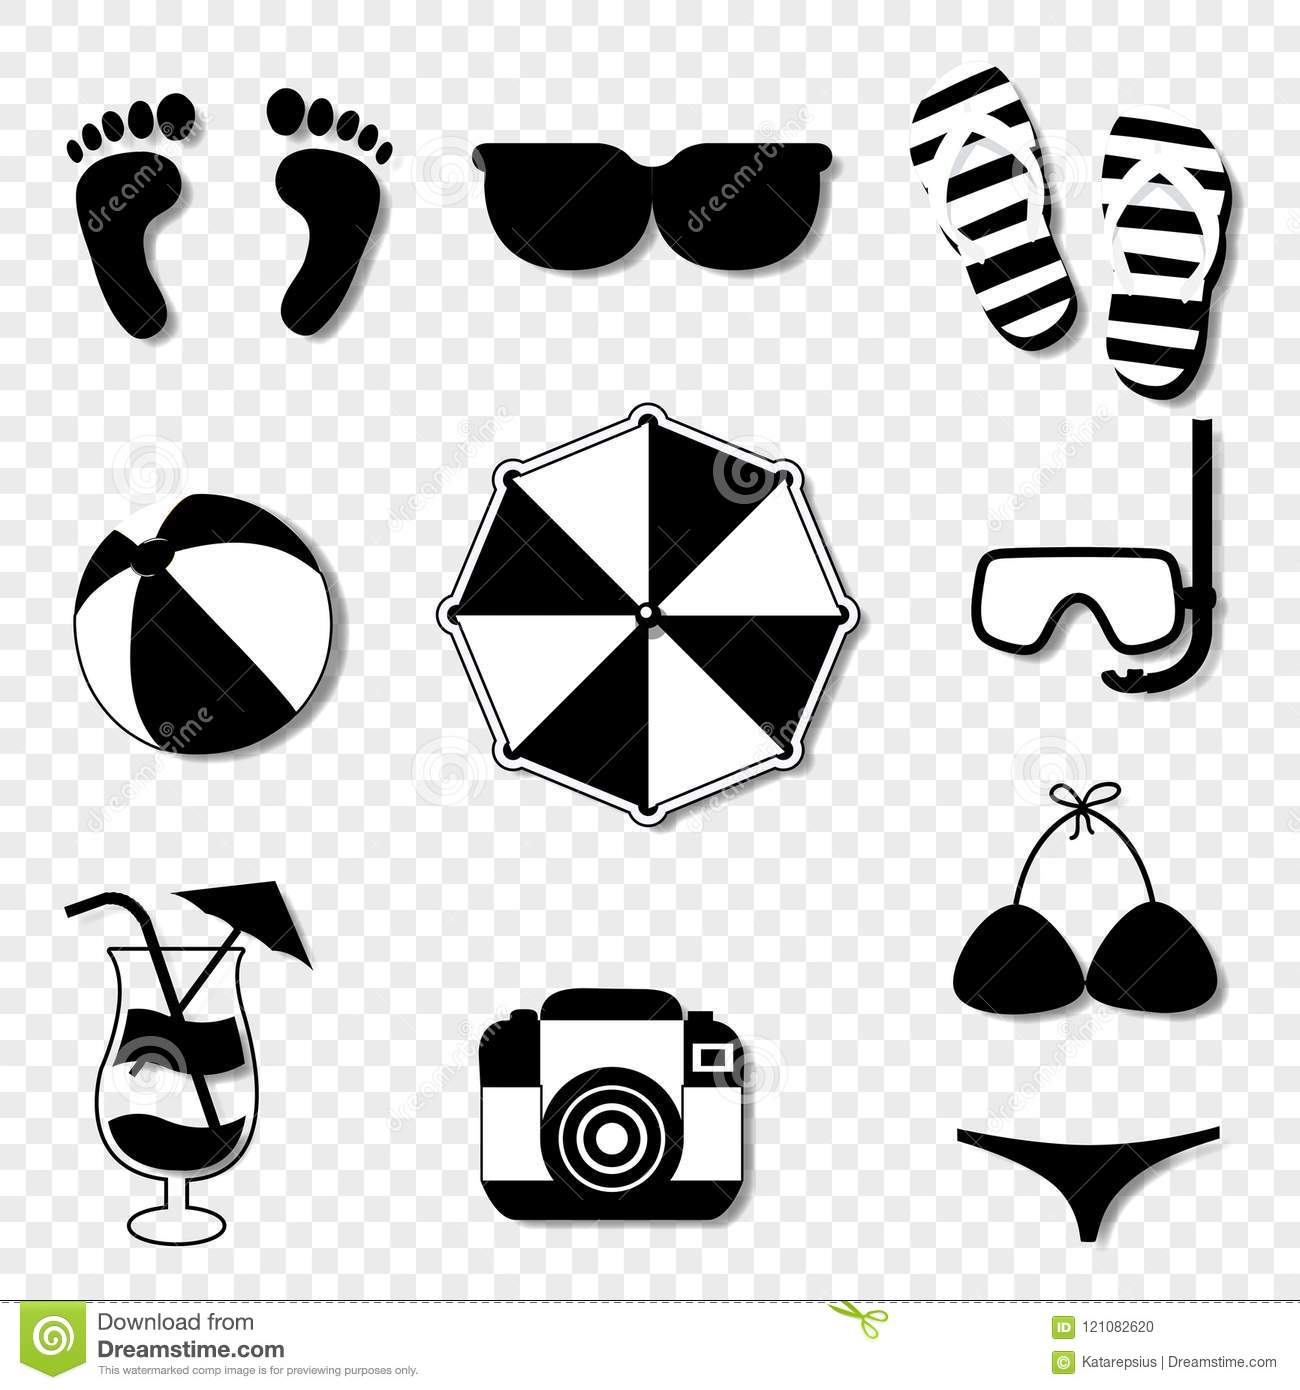 summer travel beach icon set isolated on transparent background stock vector illustration of camera pictogram 121082620 https www dreamstime com summer travel beach icon set isolated transparent background vector black white silhouette illustration summer travel image121082620